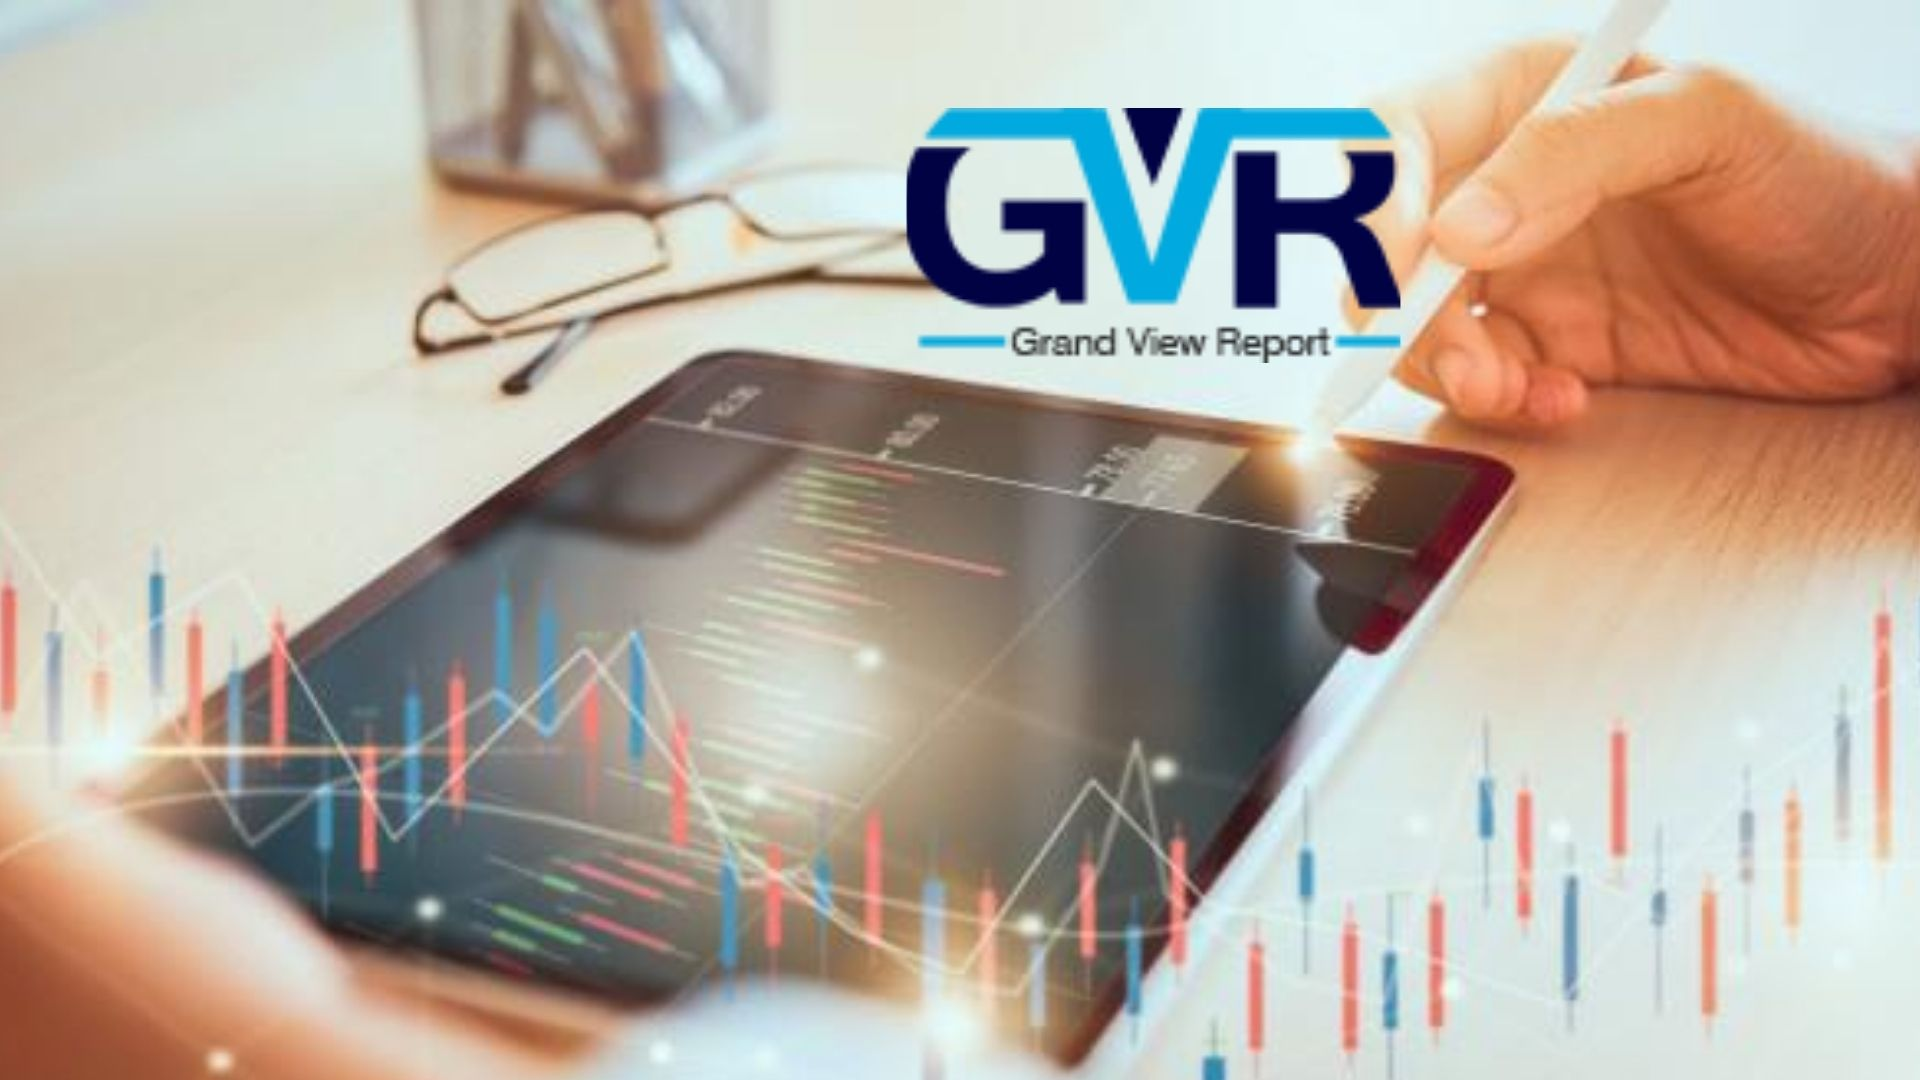 Sake Market 2020 Global Industry Size, Future Trends, Growth Key Factors, Demand, Manufacture Players And Opportunities Analysis By Outlook – 2027 – Scientect photo